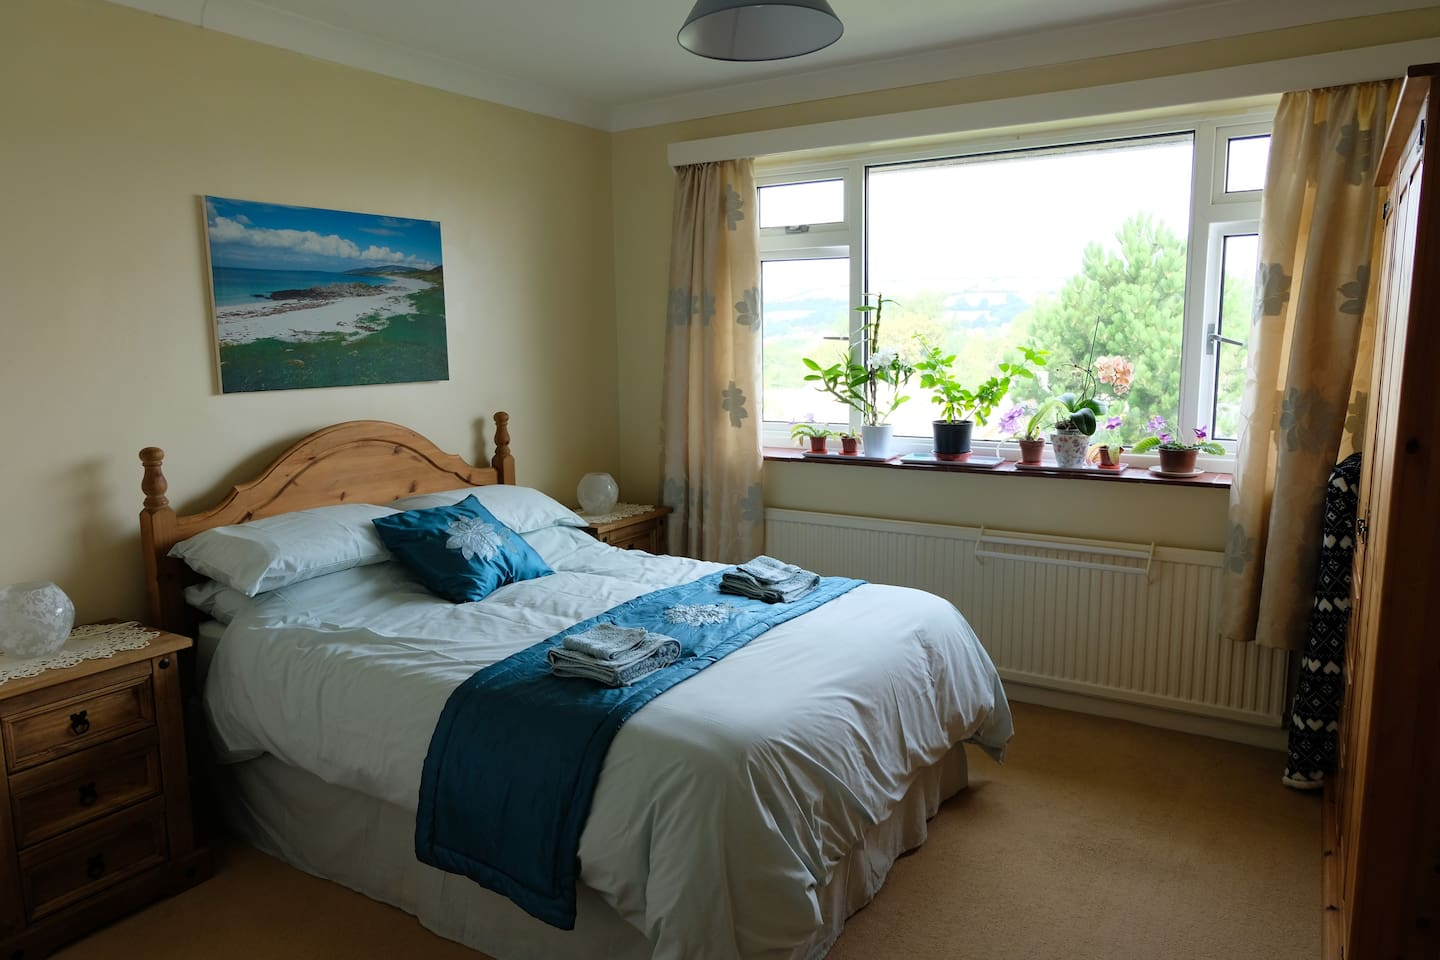 Private double room with en suite, five minute walk to Hive Beach and the south west coastal path, you will find the room most comfortable.